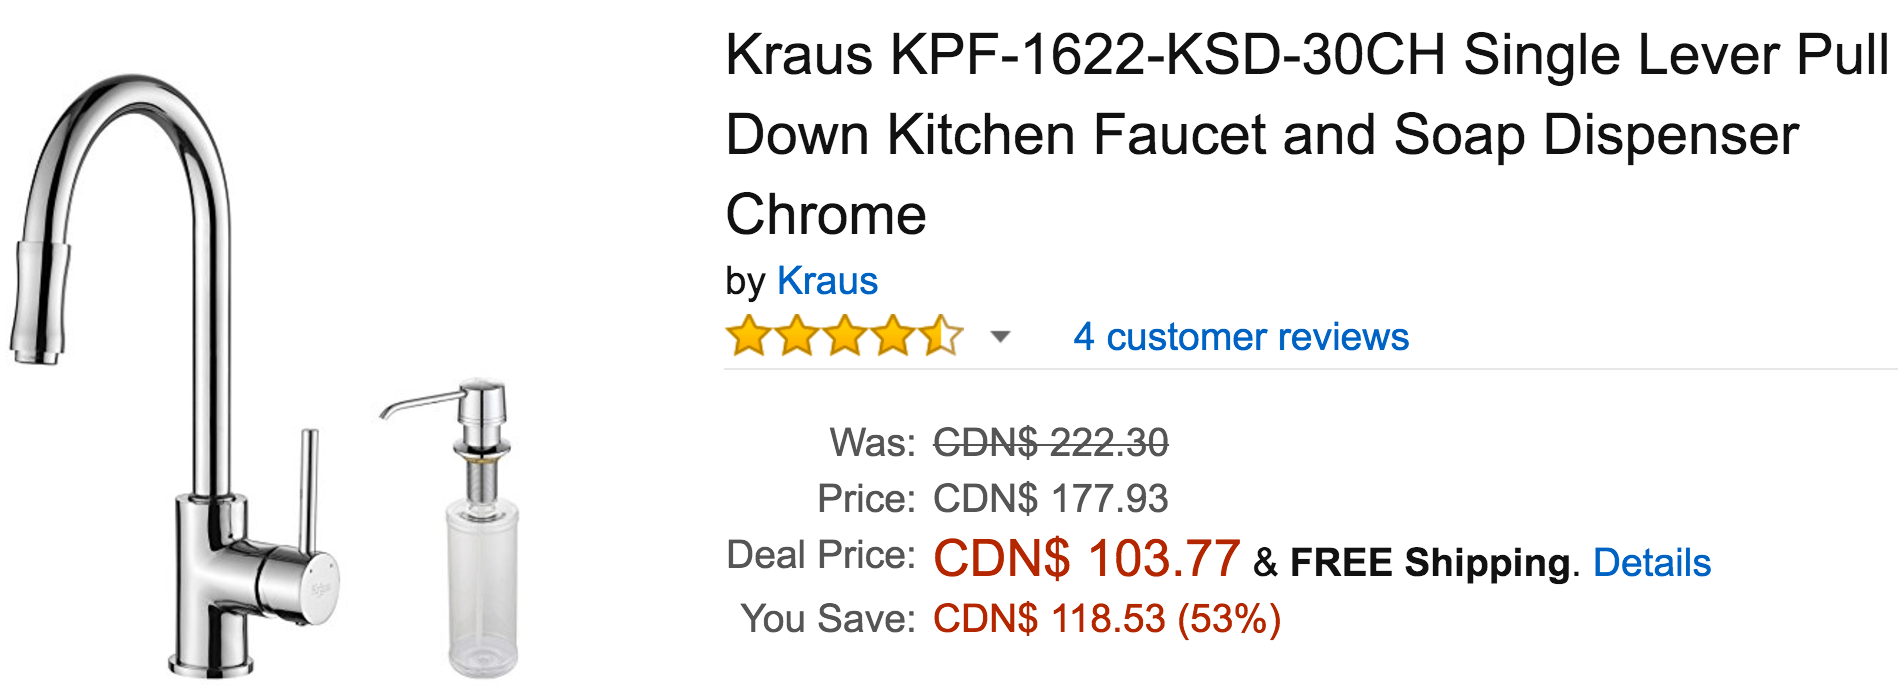 Amazon Canada Black Friday Today's Deals: Save 53% On Kraus Single Lever Pull Down Kitchen Faucet, 36% On 21ft 30 Led Outdoor Ball Lights & More Offers